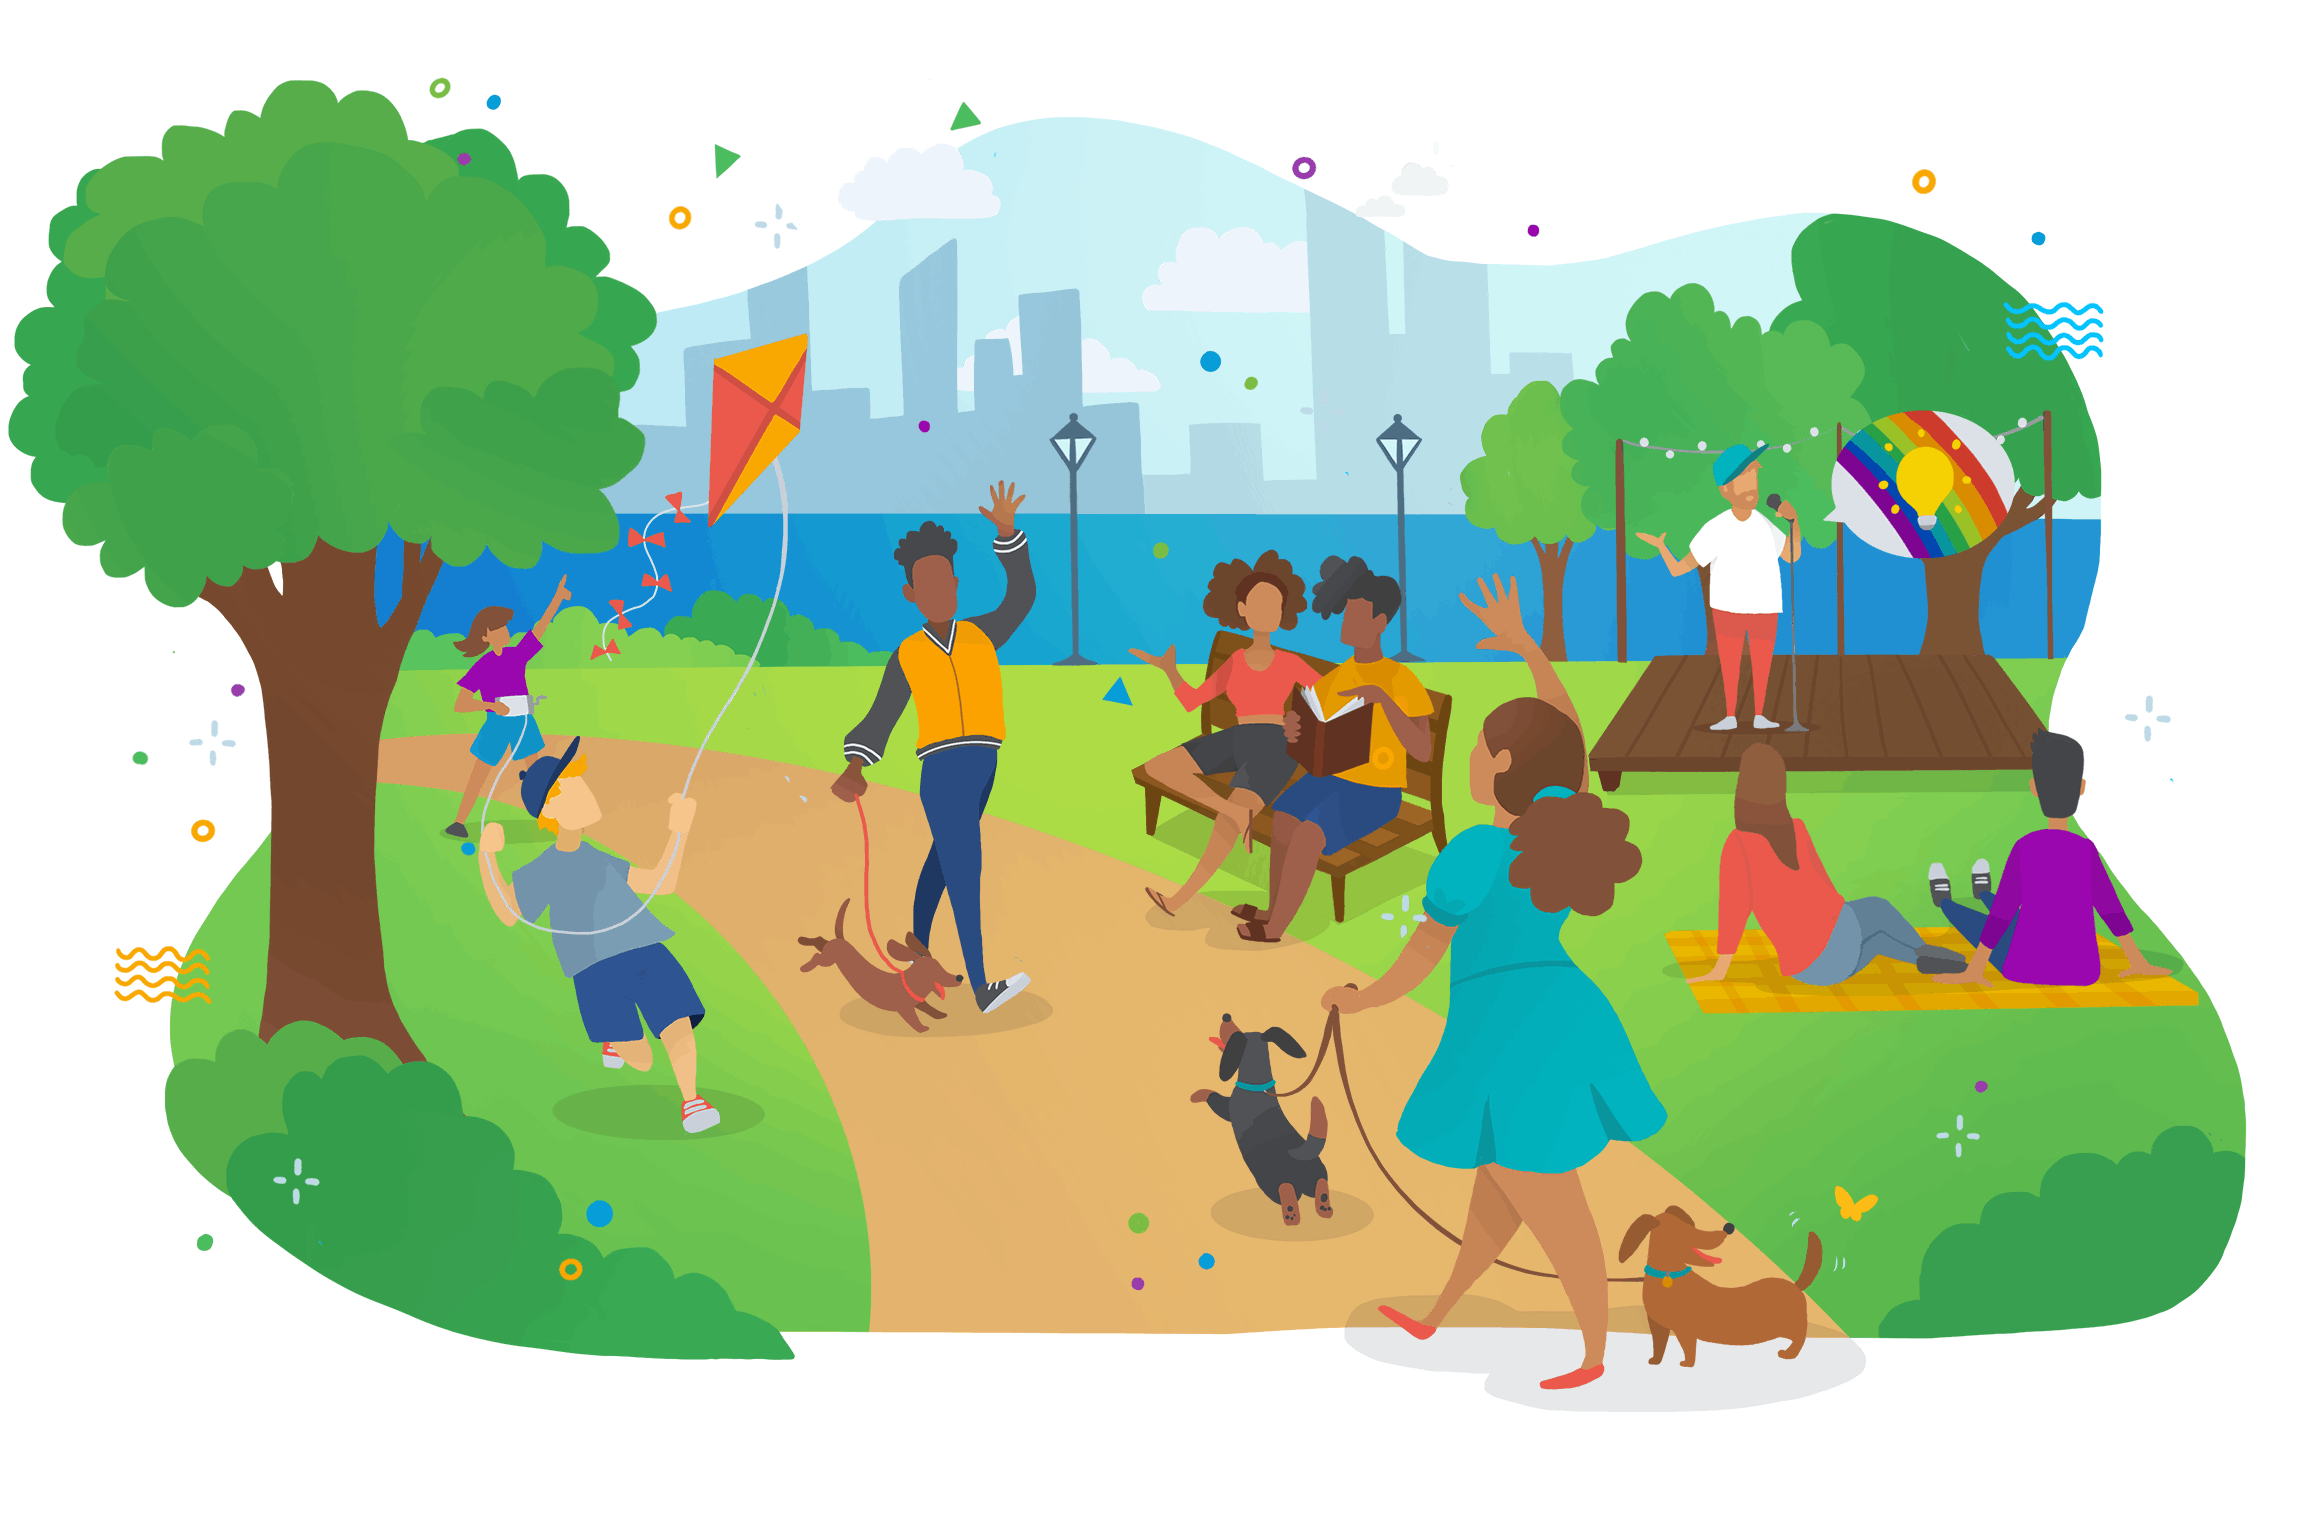 A colourful cartoon illustration of people walking through a park waving at one another, siting on picnic blankets, and flying kites.